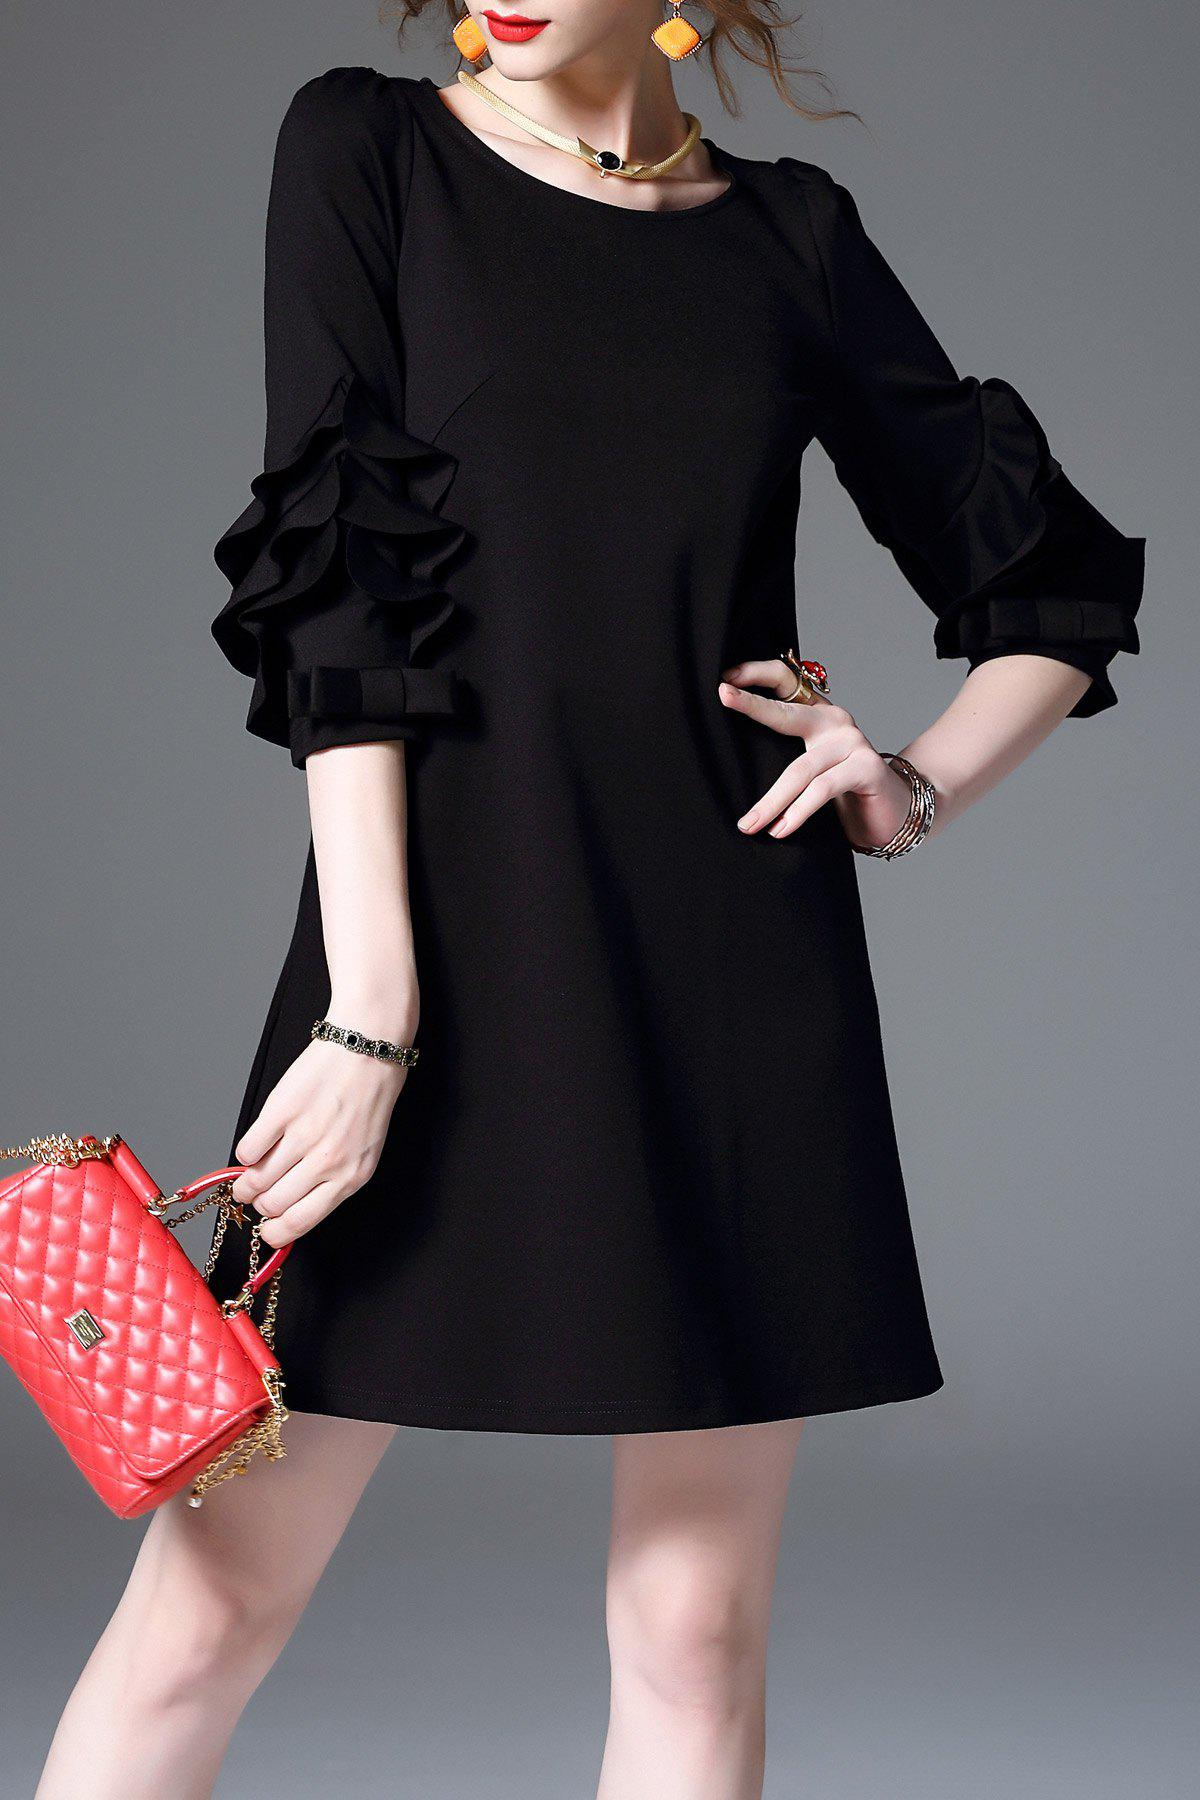 Ruffle Sleeve Mini Dress Une Ligne